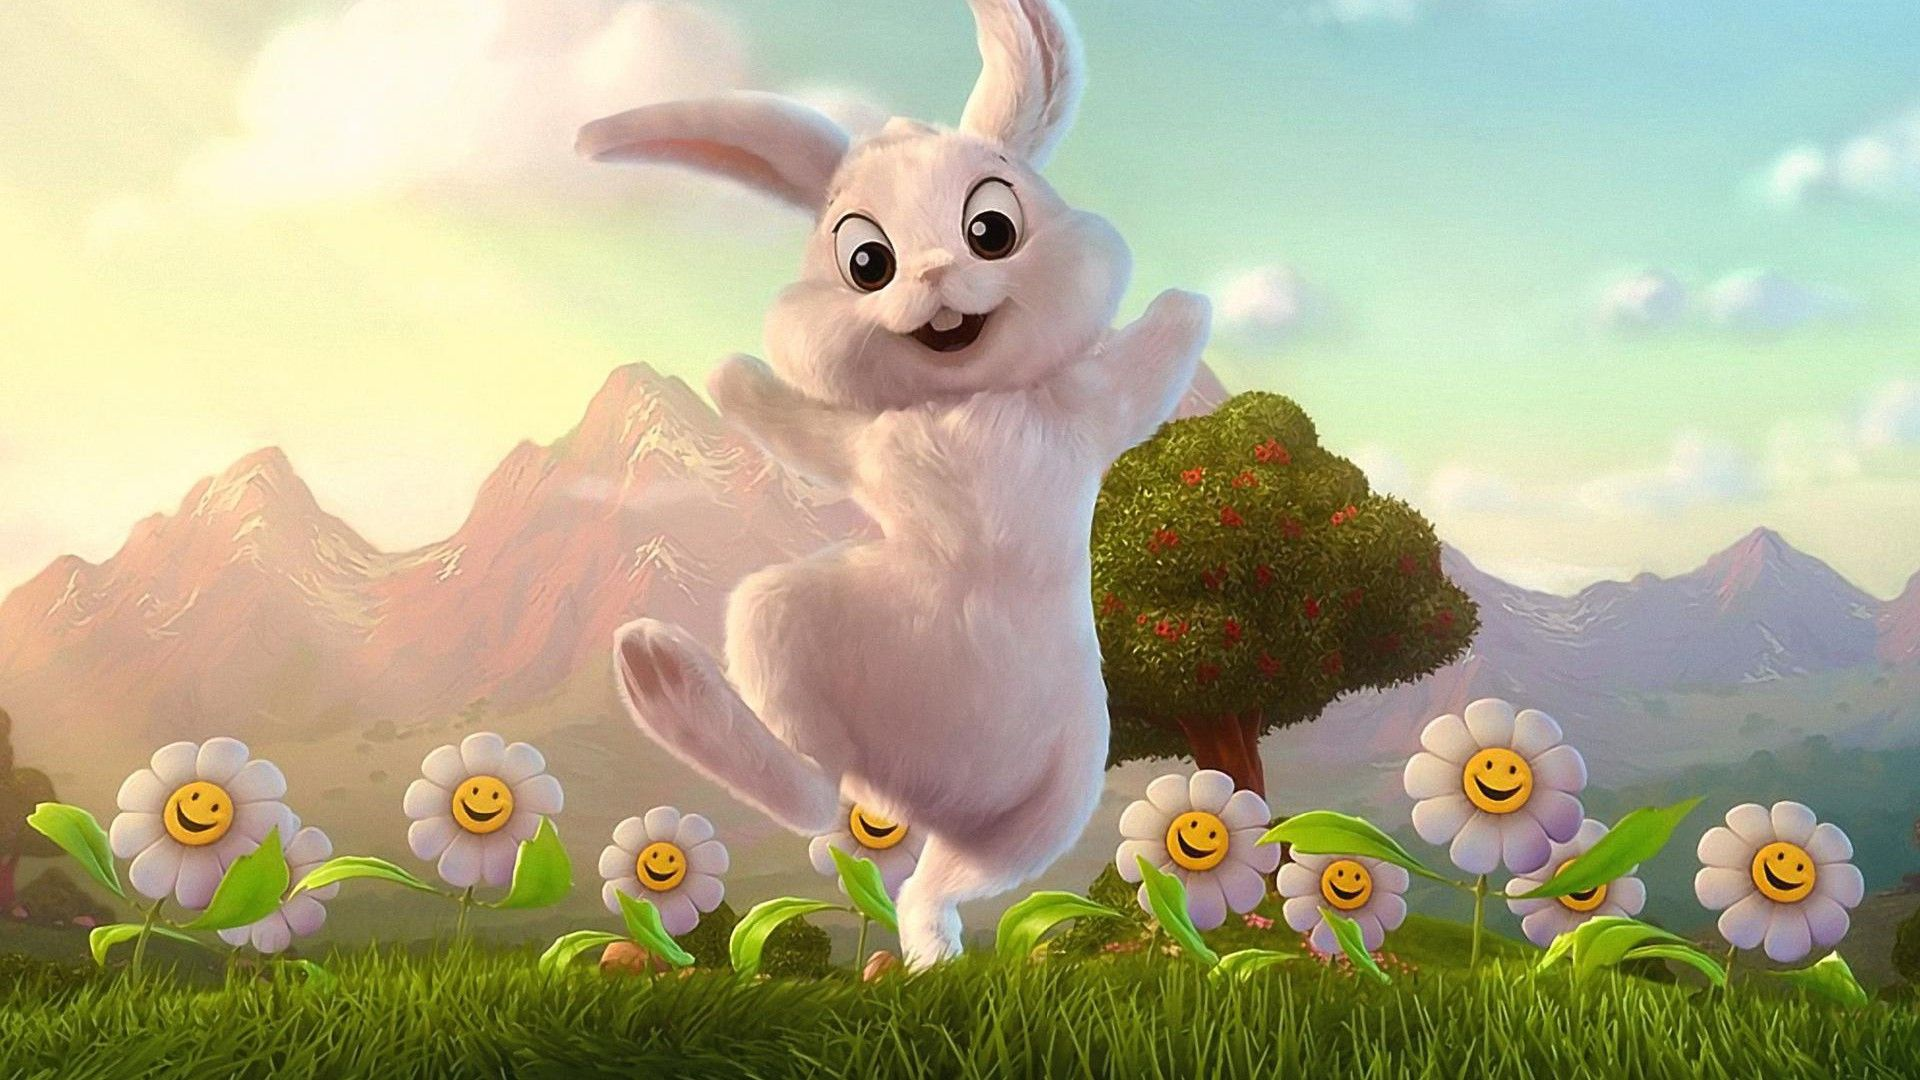 Desktop Animated Rabbit Images Download Easter Bunny Pictures